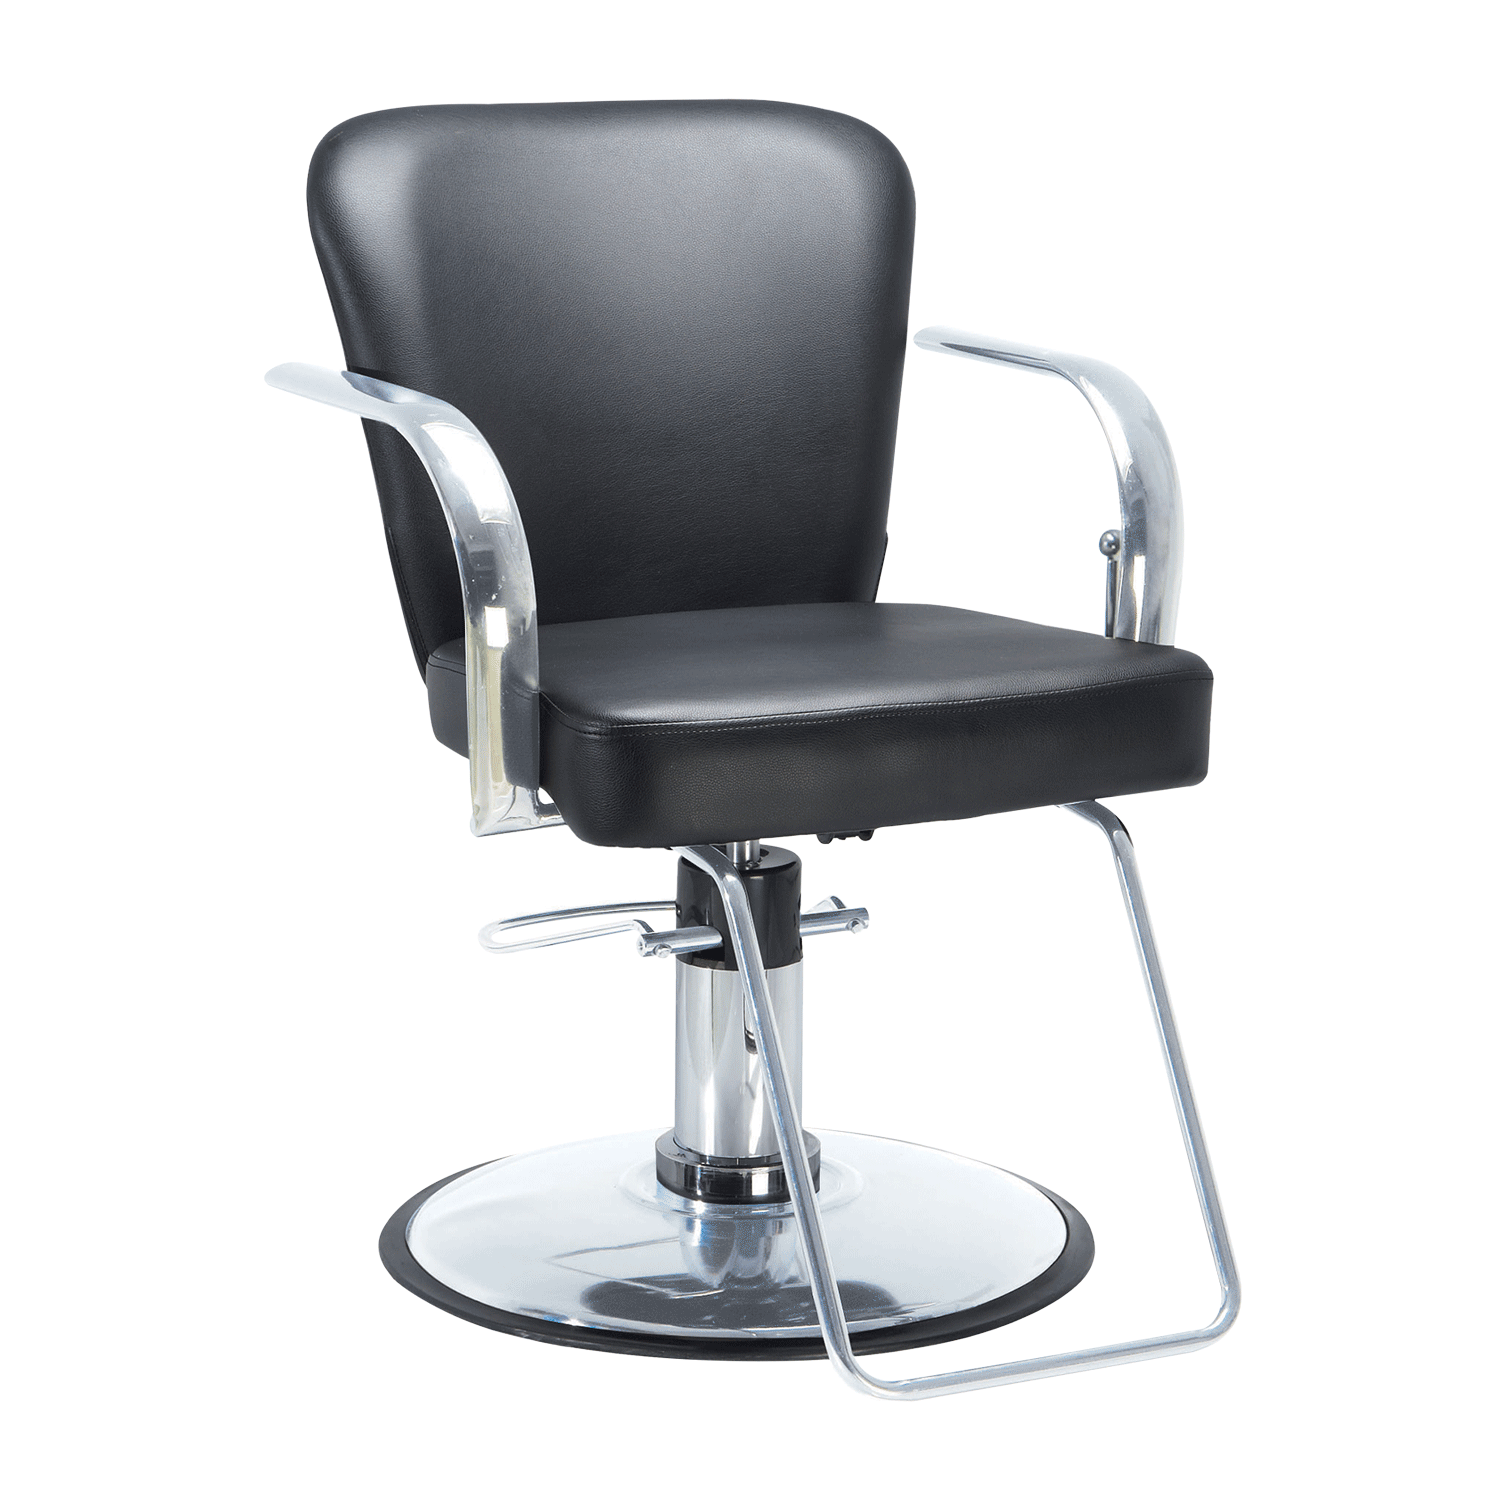 chromium cr2411 allpurpose styling chair with chrome base